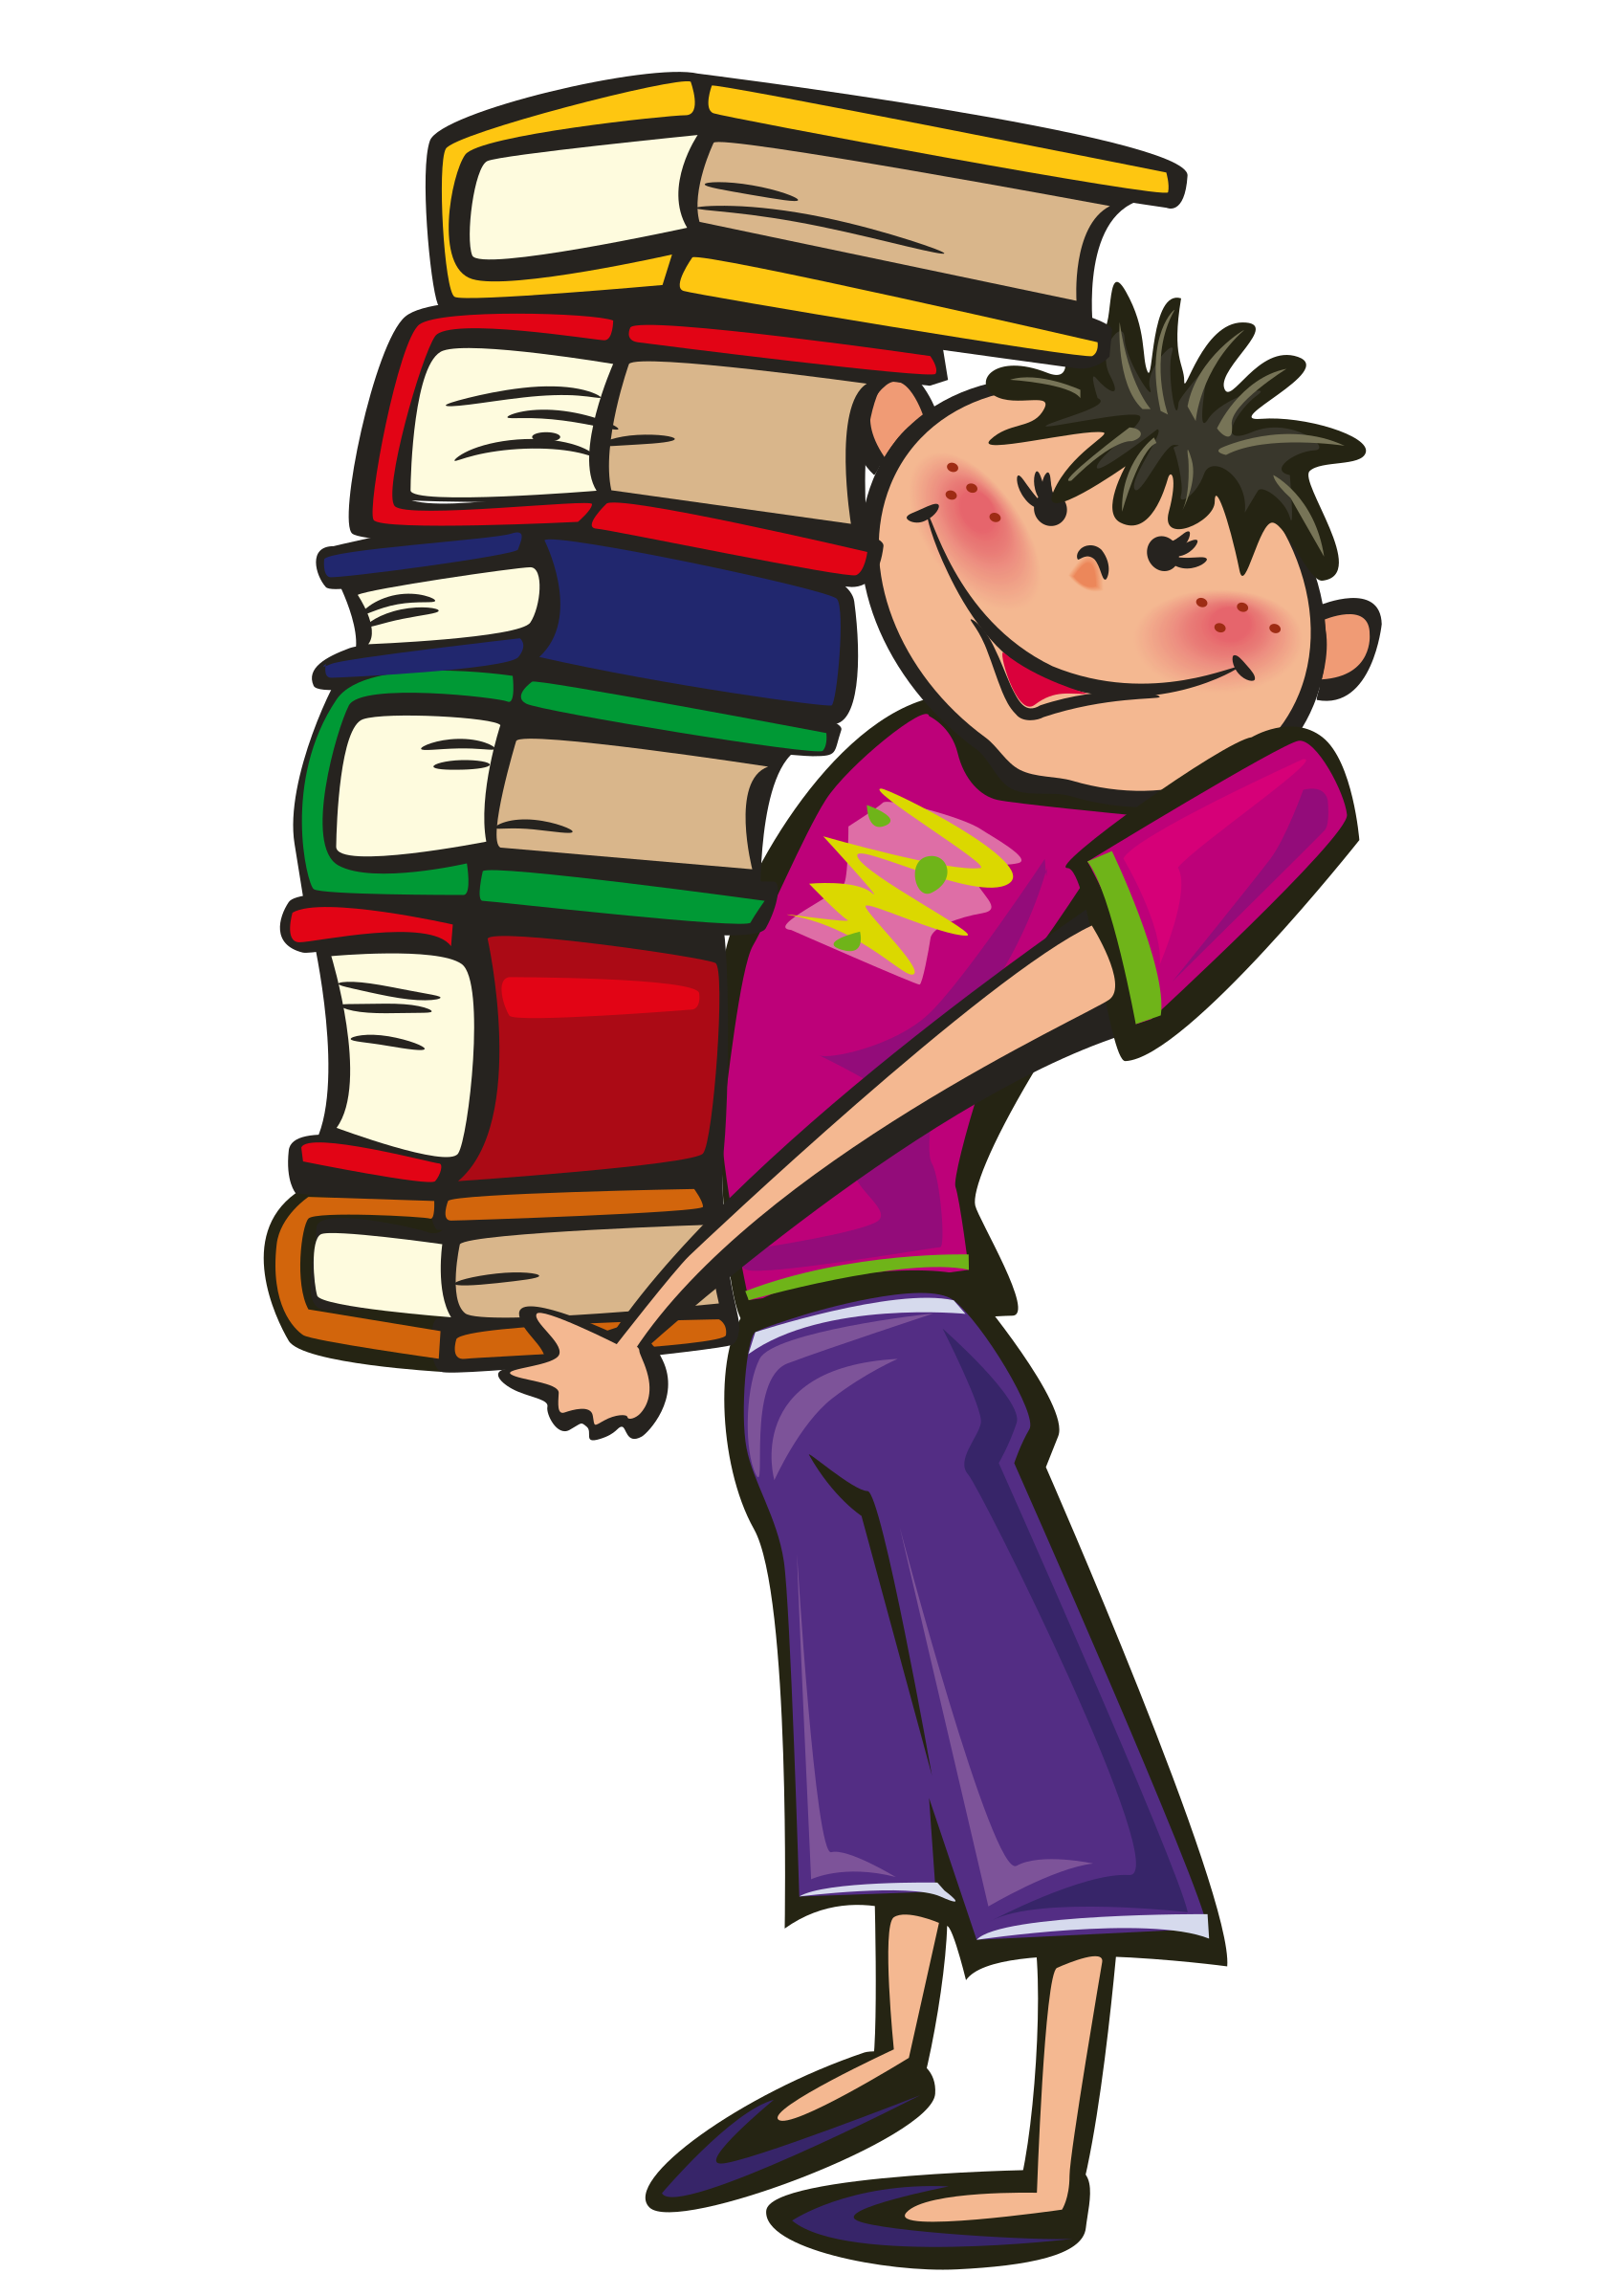 School student clipart picture download Clipart - school days picture download